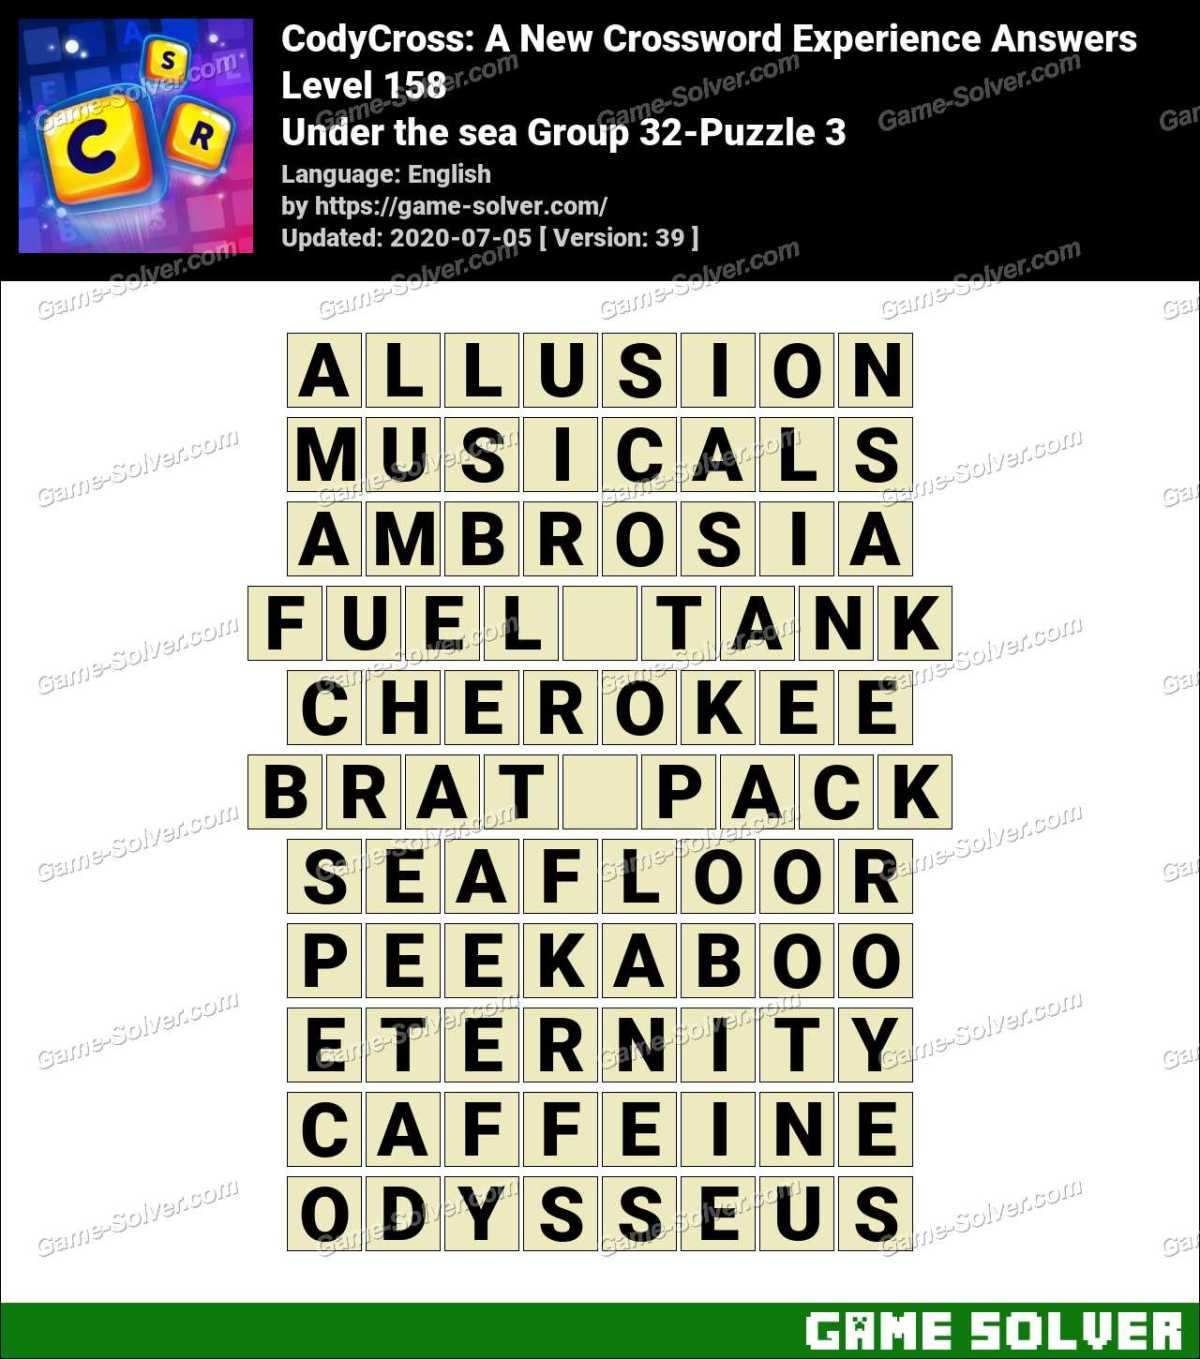 CodyCross Under the sea Group 32-Puzzle 3 Answers